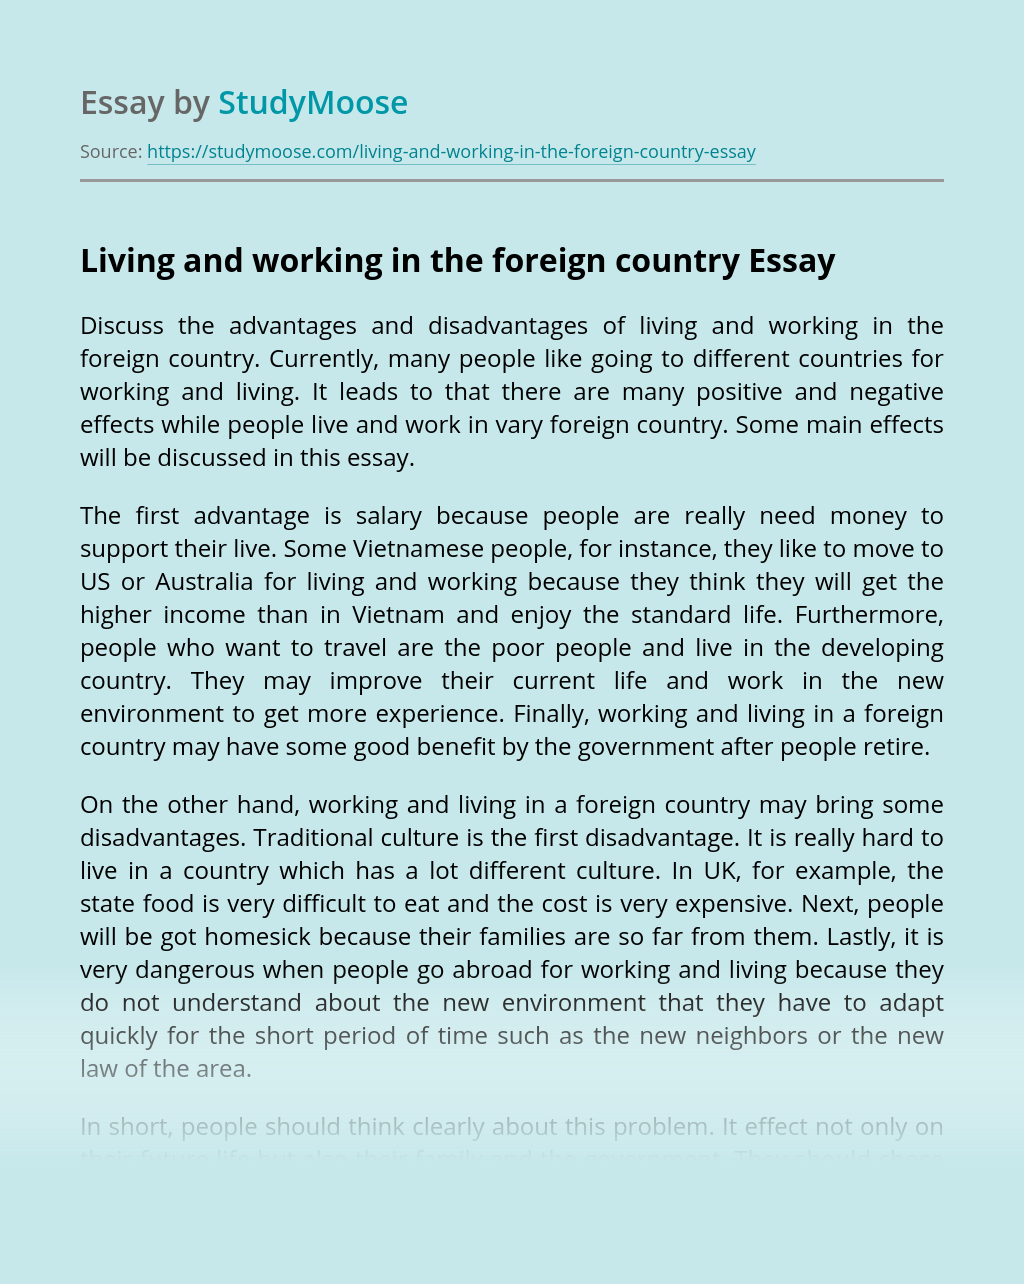 Living and working in the foreign country